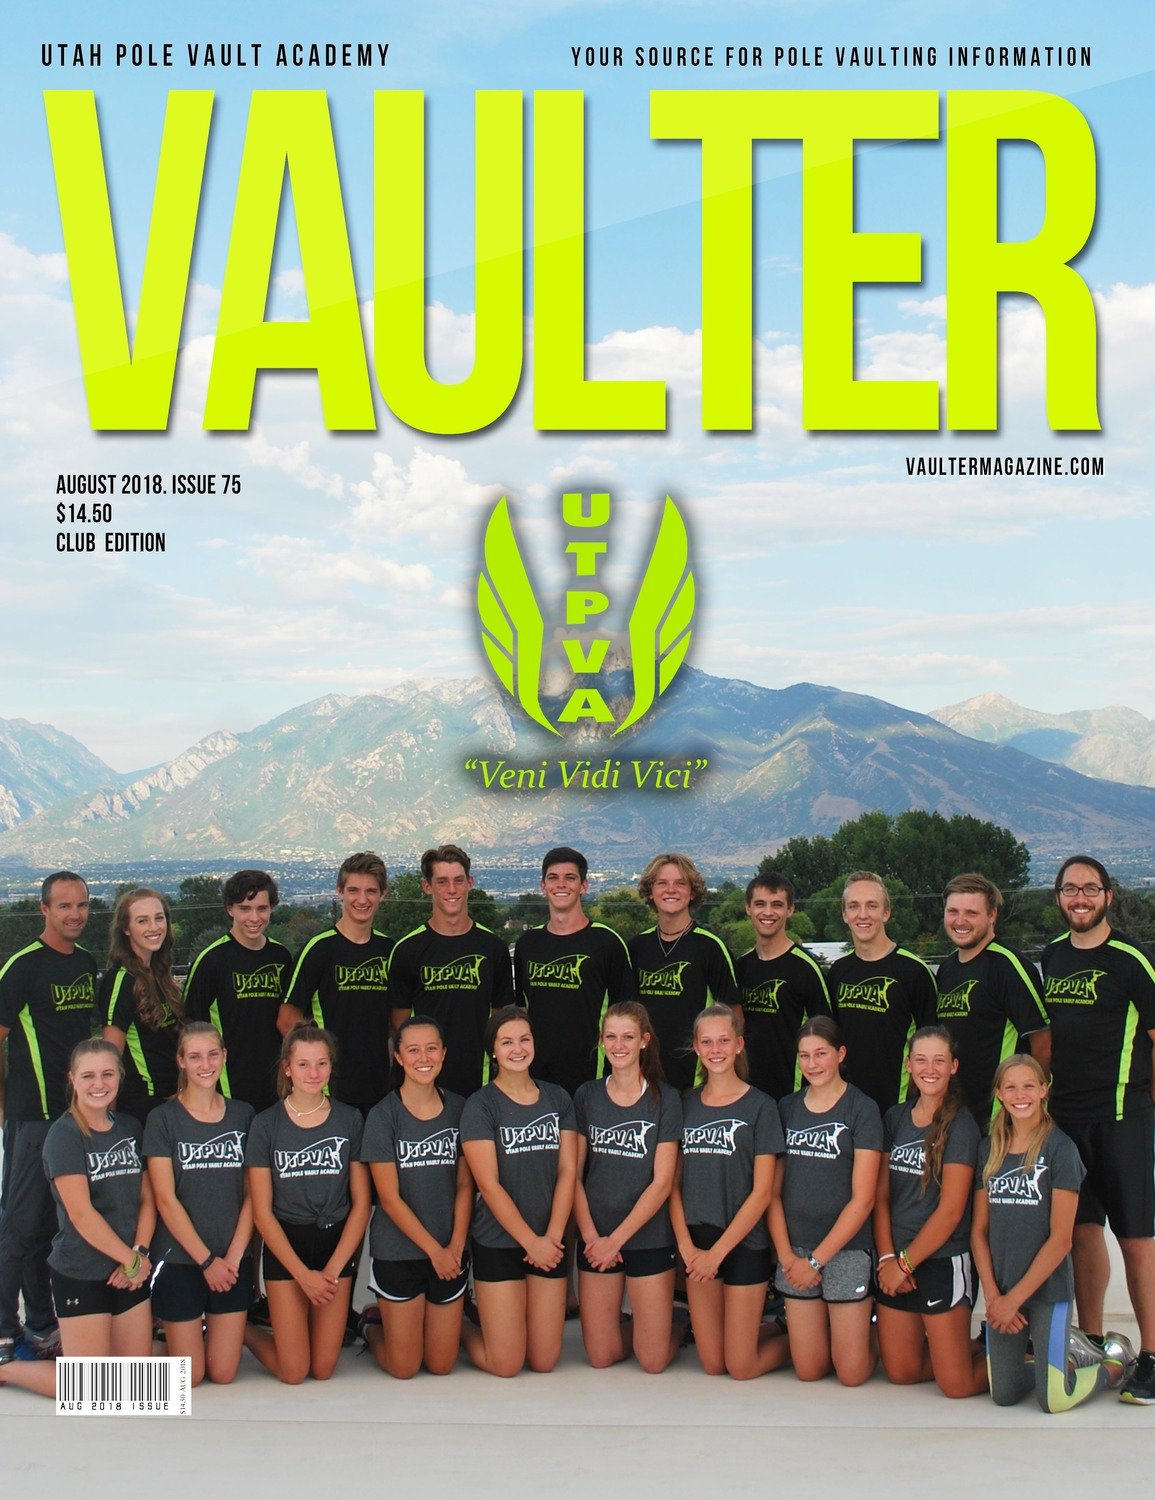 August 2018 Utah Pole Vault Academy Cover of Vaulter Magazine Issue U.S. Standard Mail